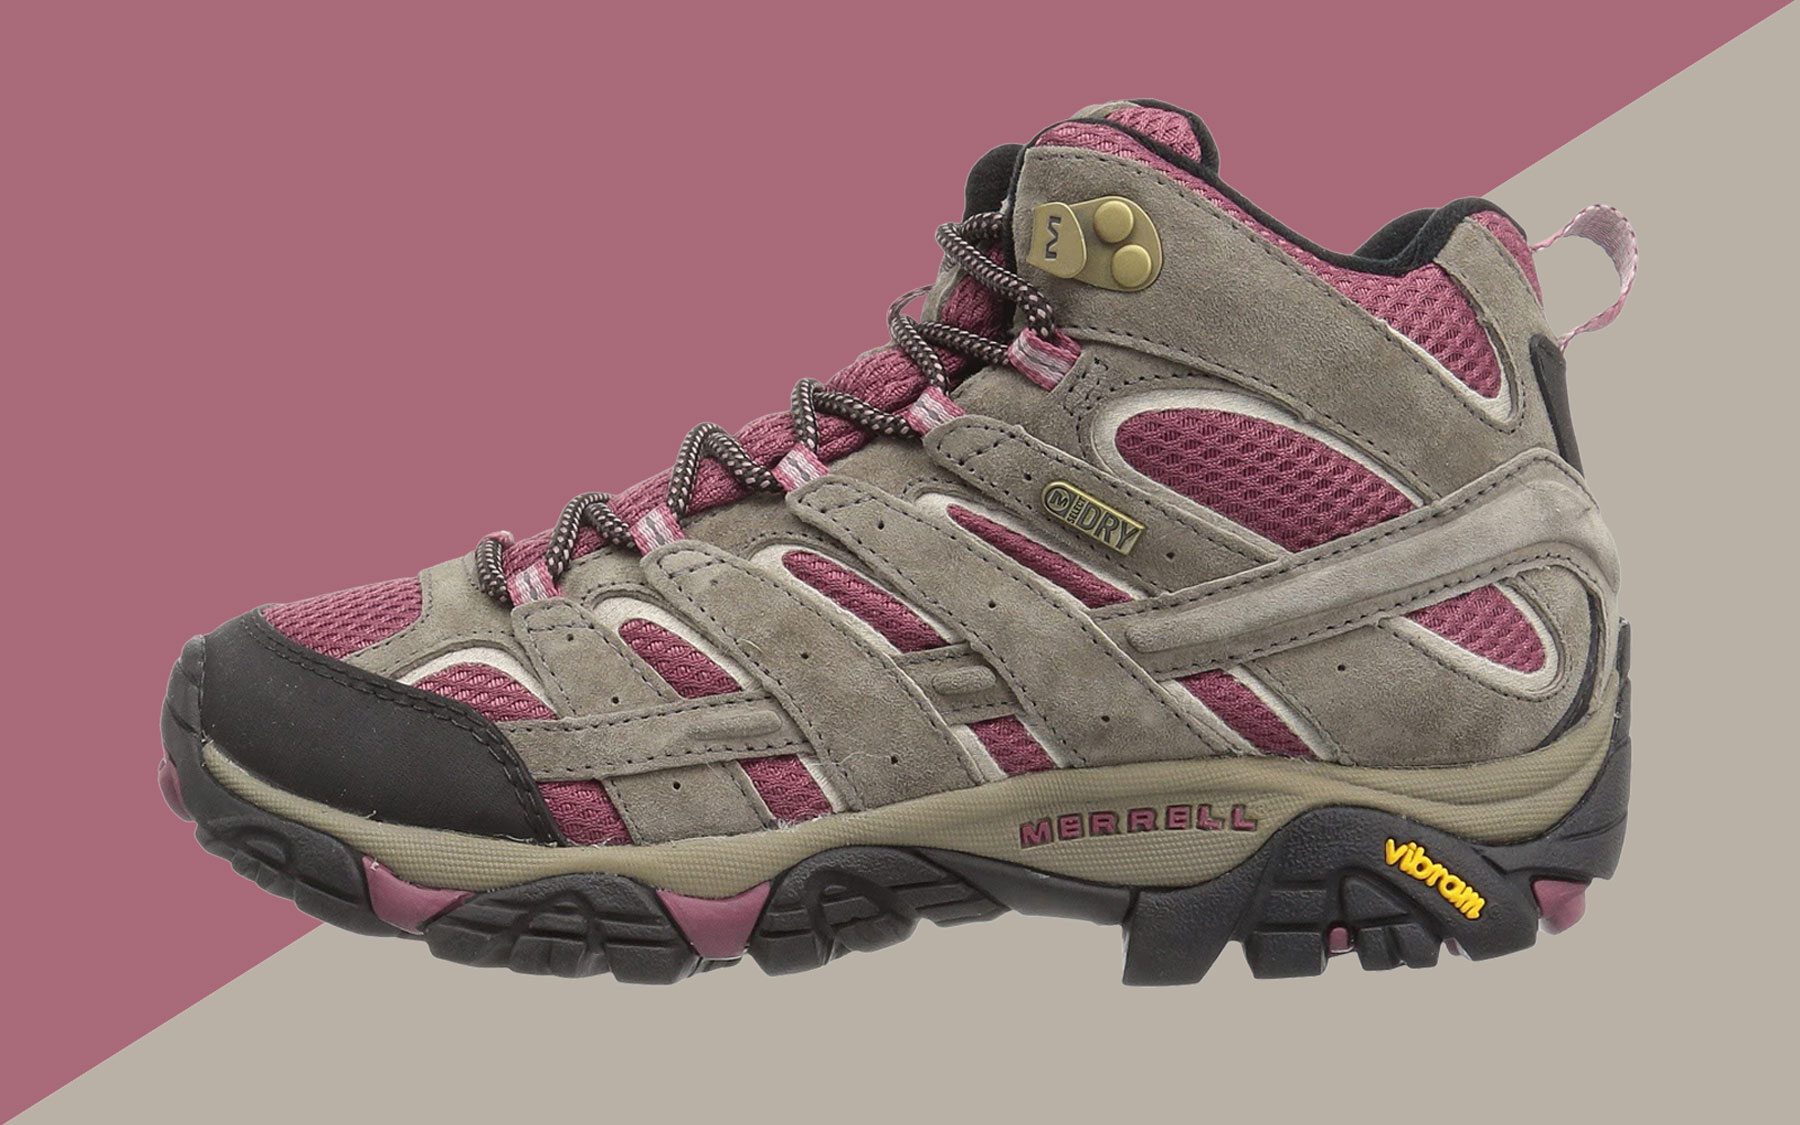 Grey and pink hiking boot